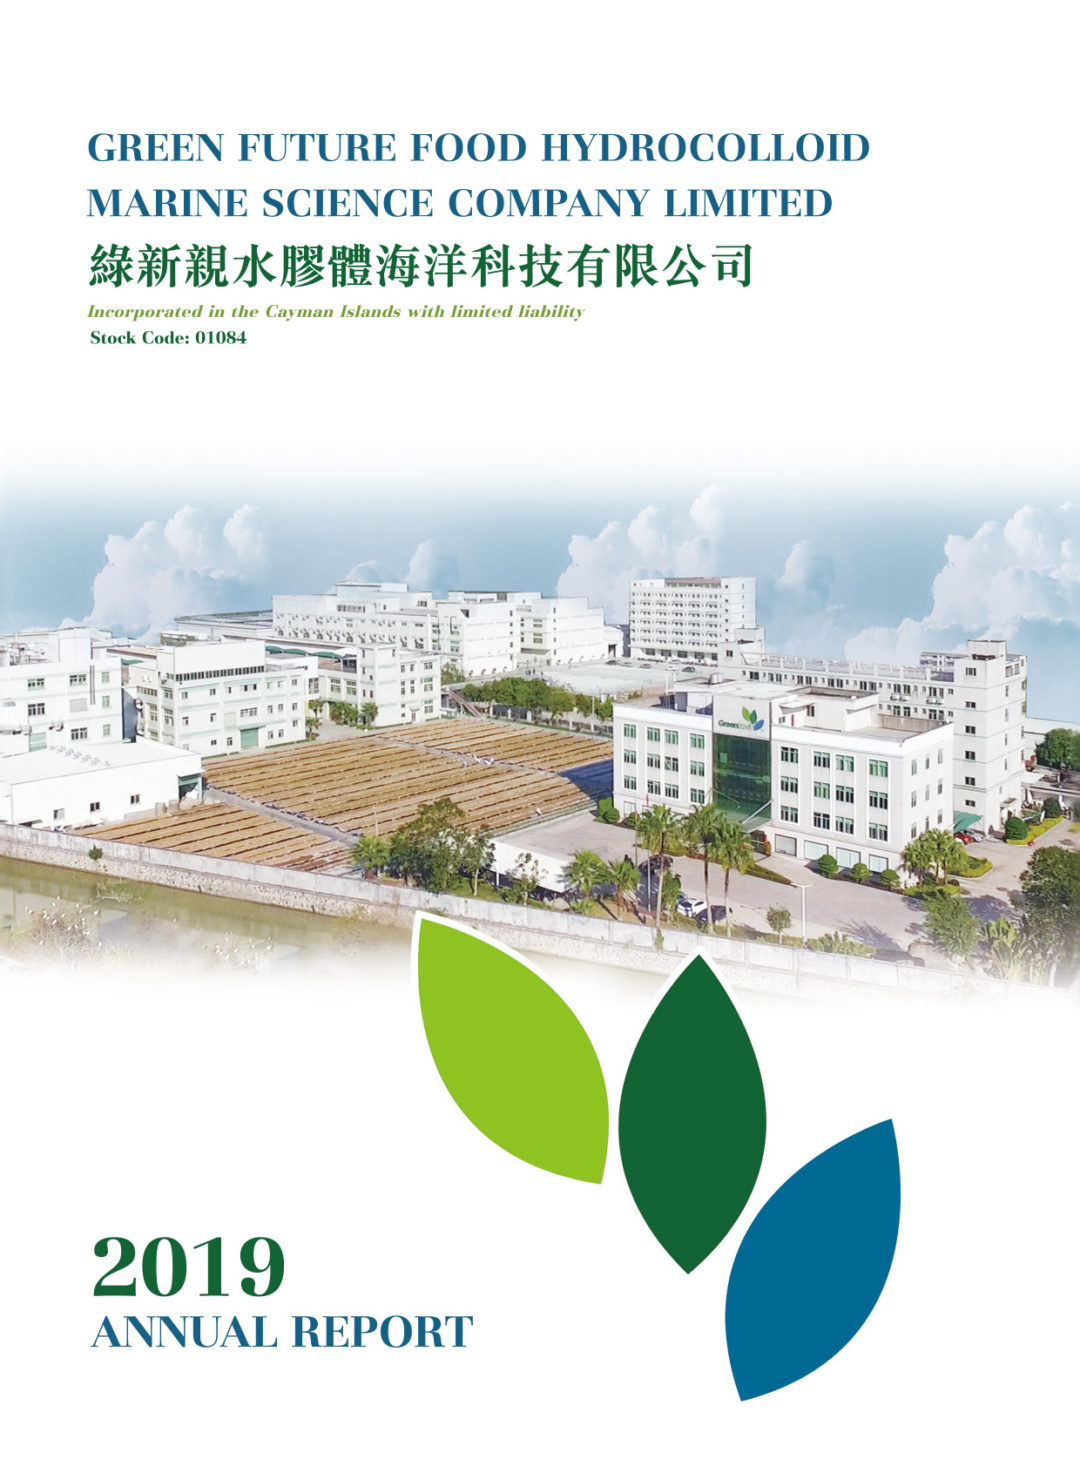 Green Future Food Hydrocolloid Marine Science Company Limited